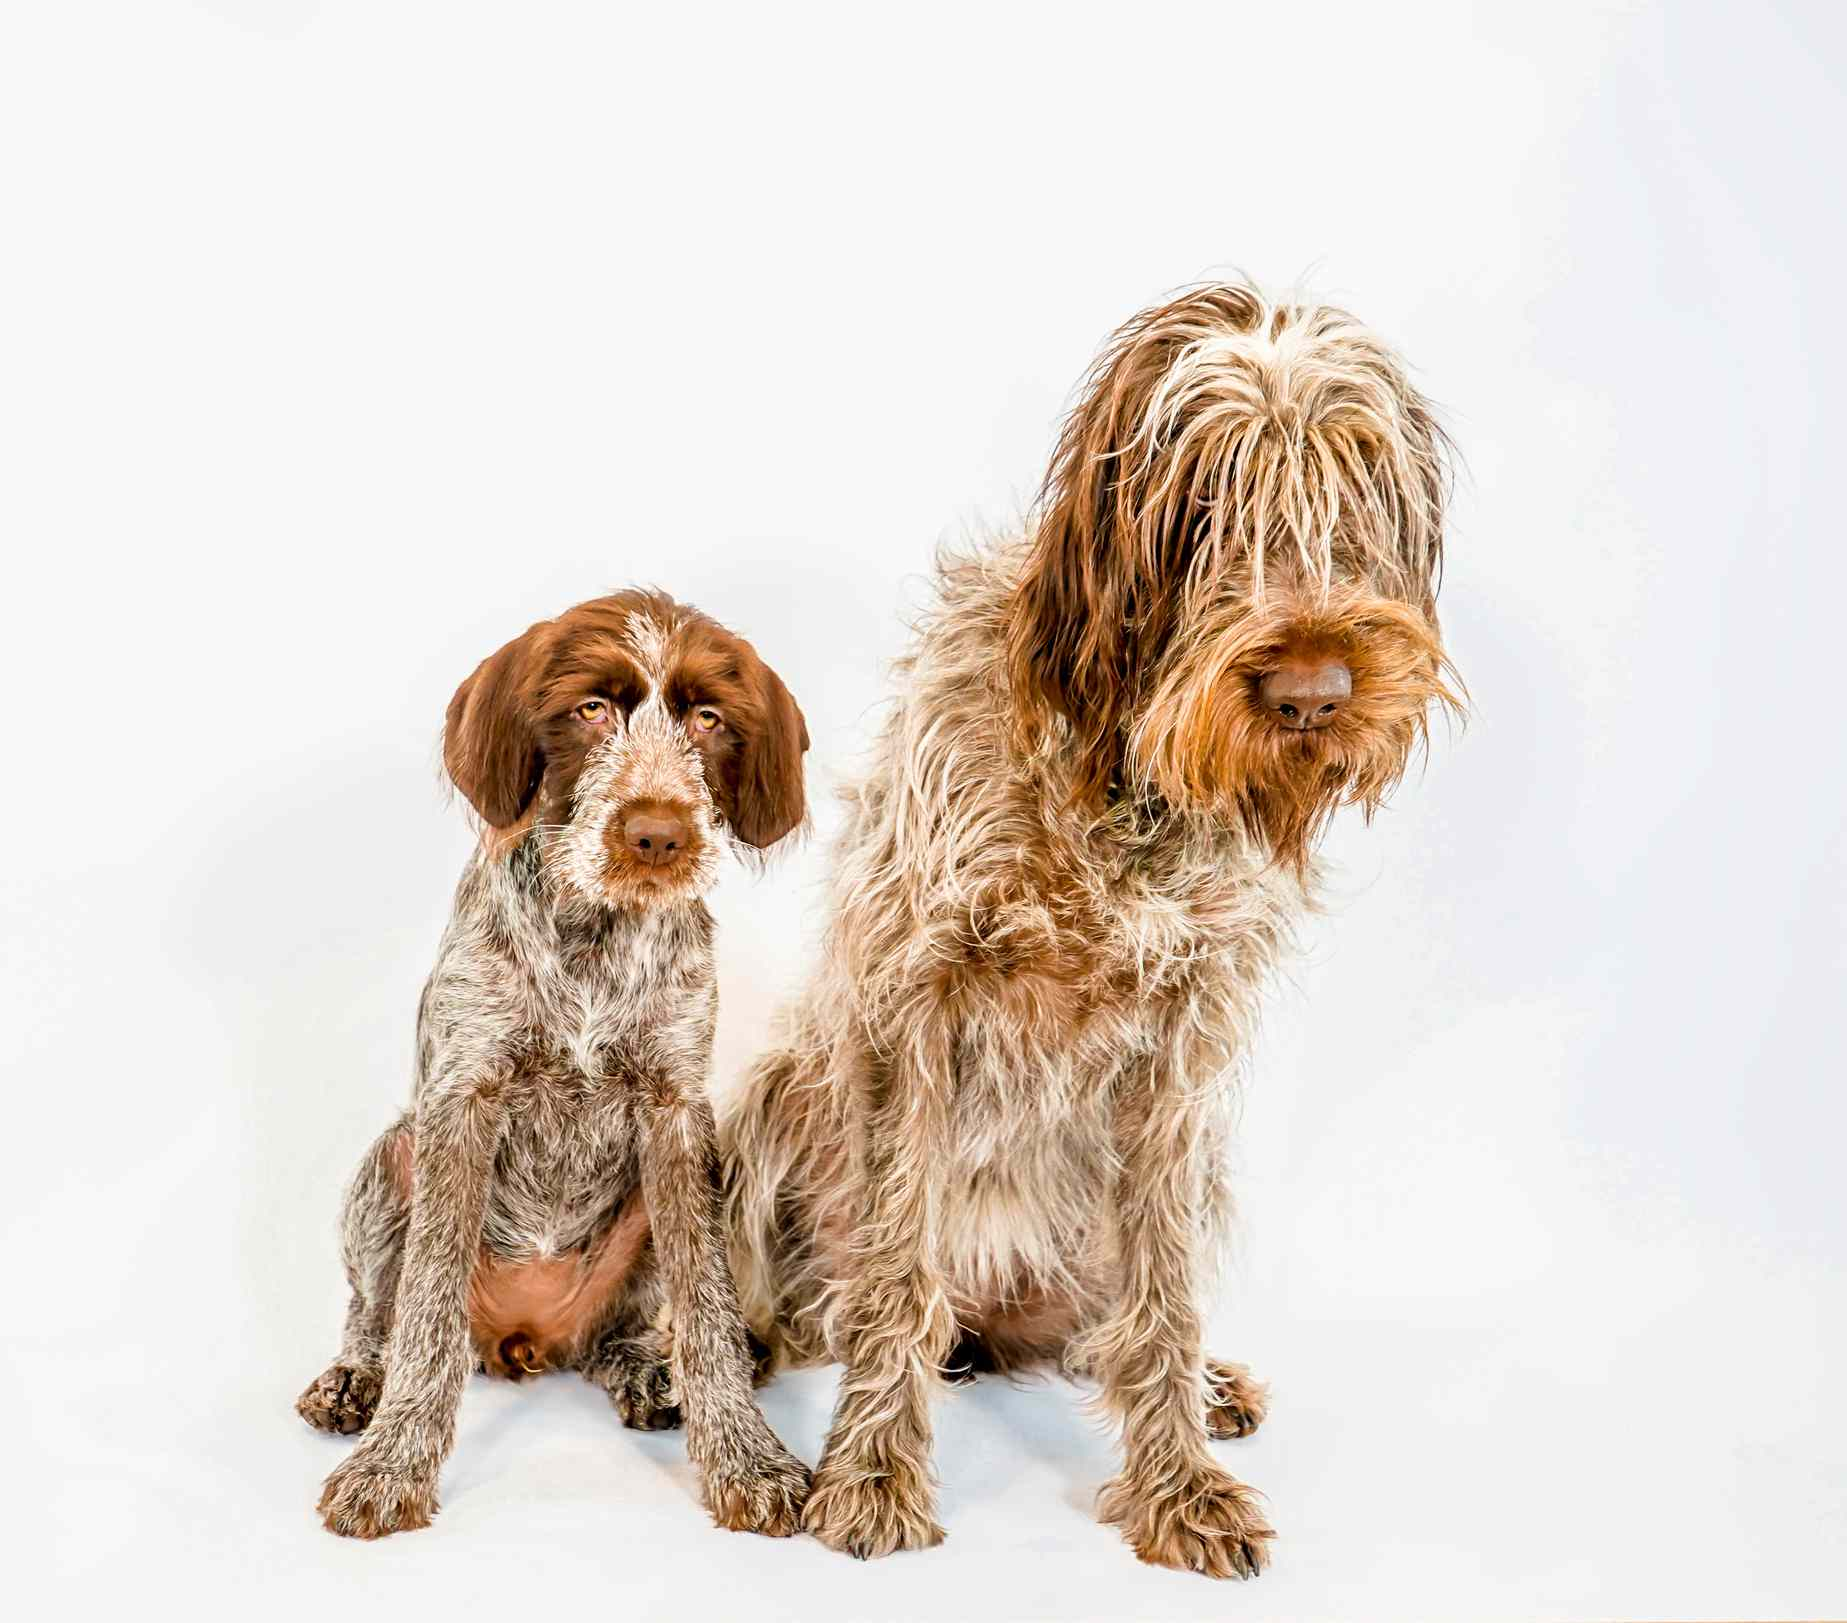 Pup Wirehaired Pointing Griffon and his Mother